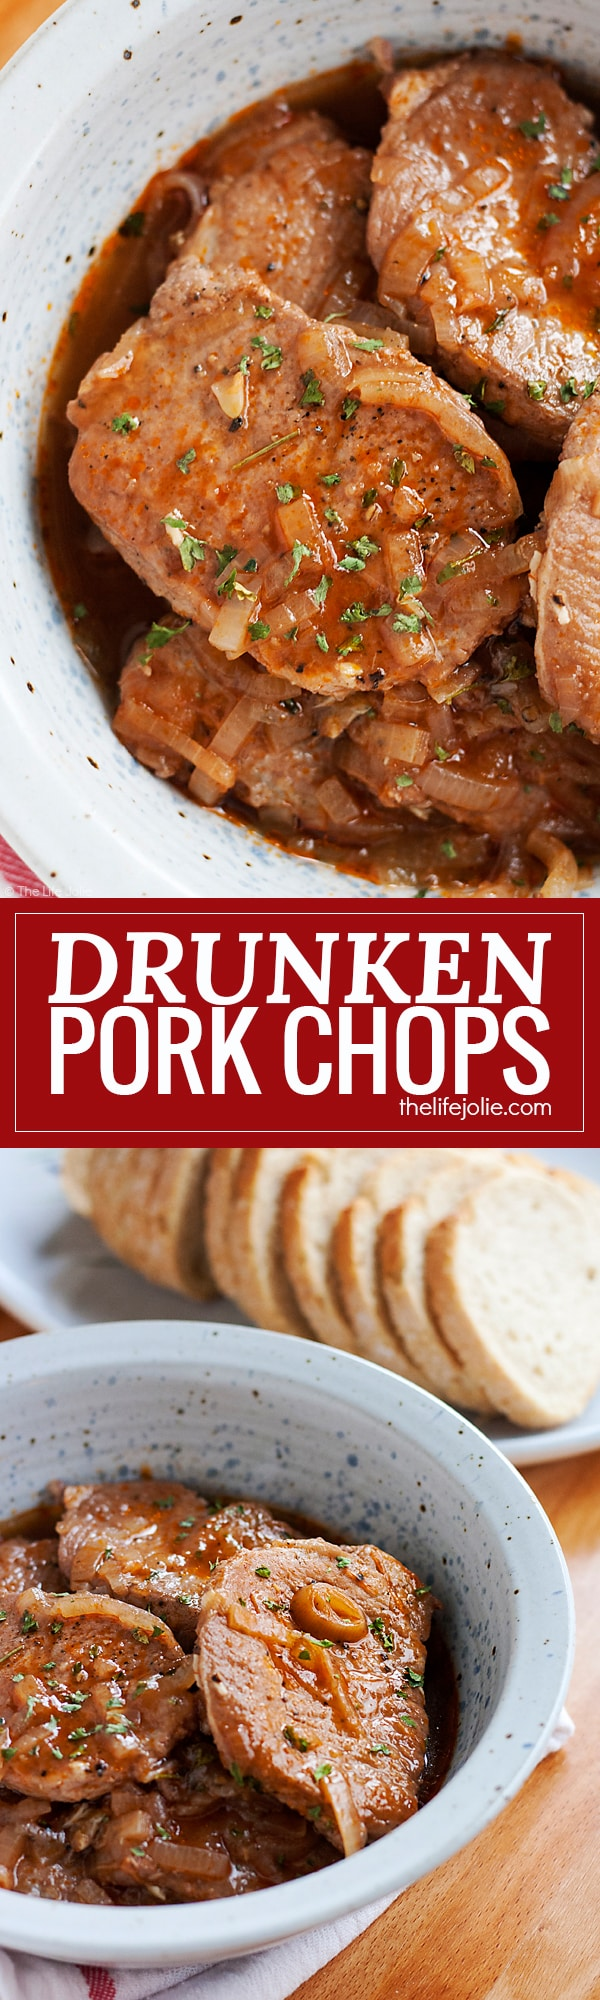 Drunken Pork Chops Is One Of The Easiest Dinner Recipes For Busy Families This